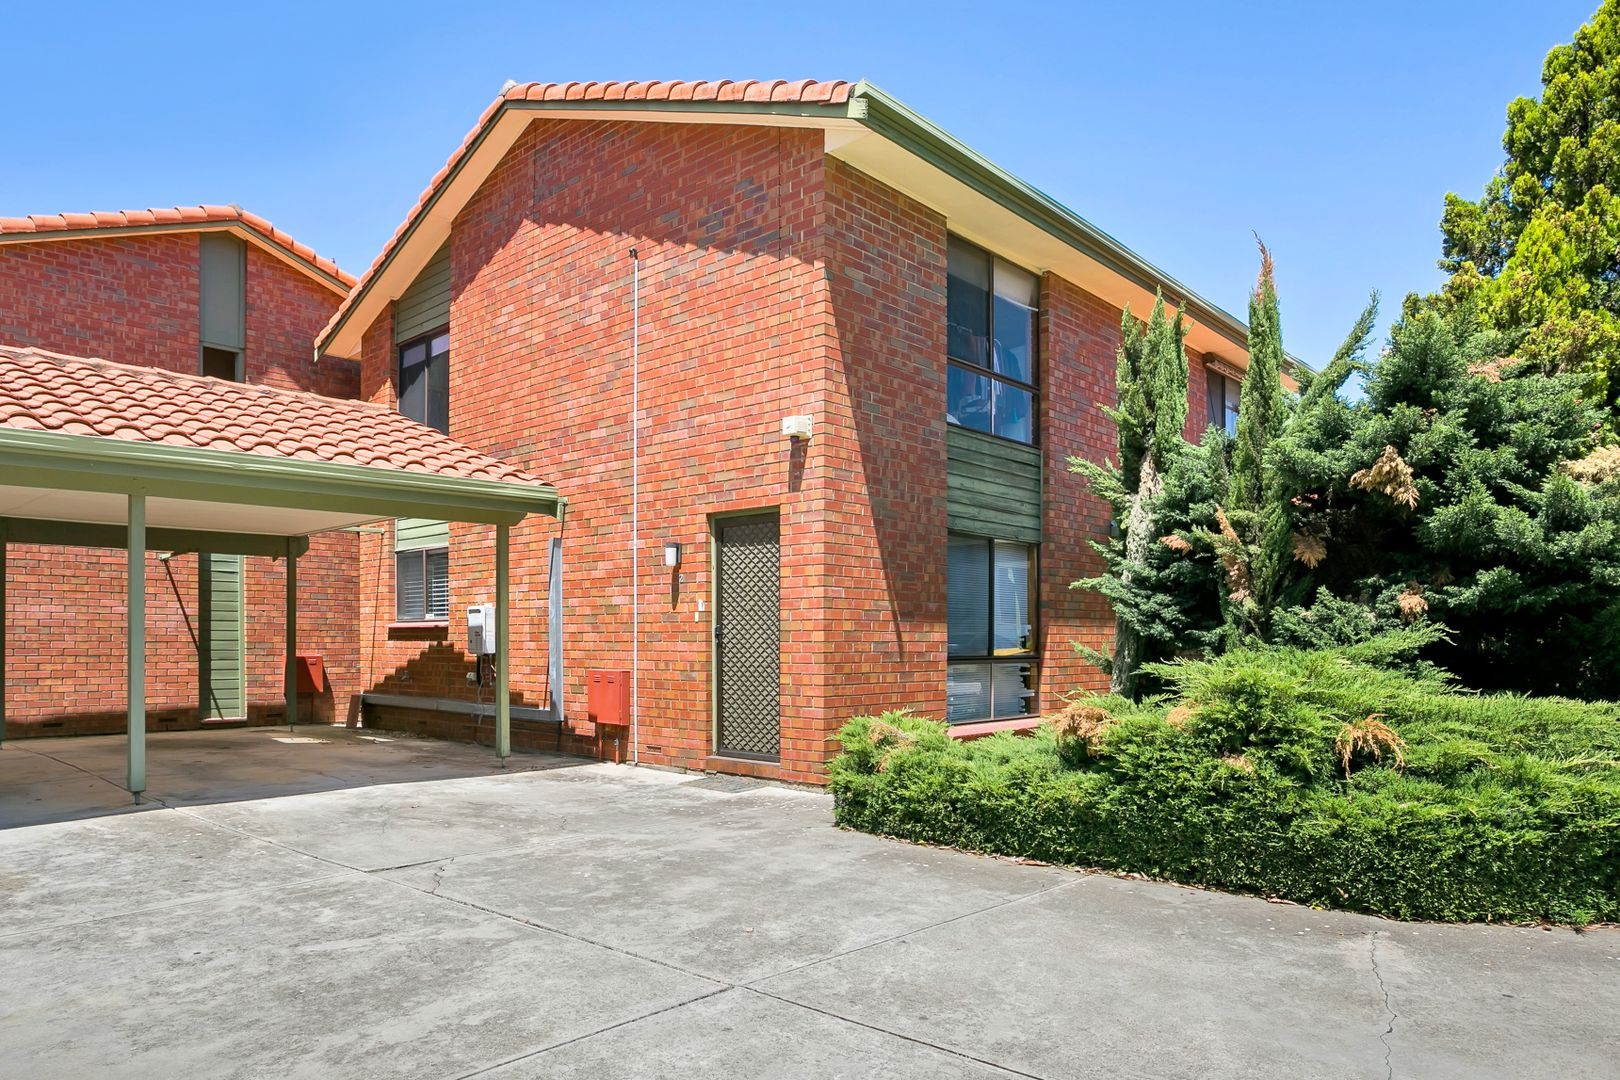 2/28 Gorge Road, Campbelltown SA 5074, Image 0